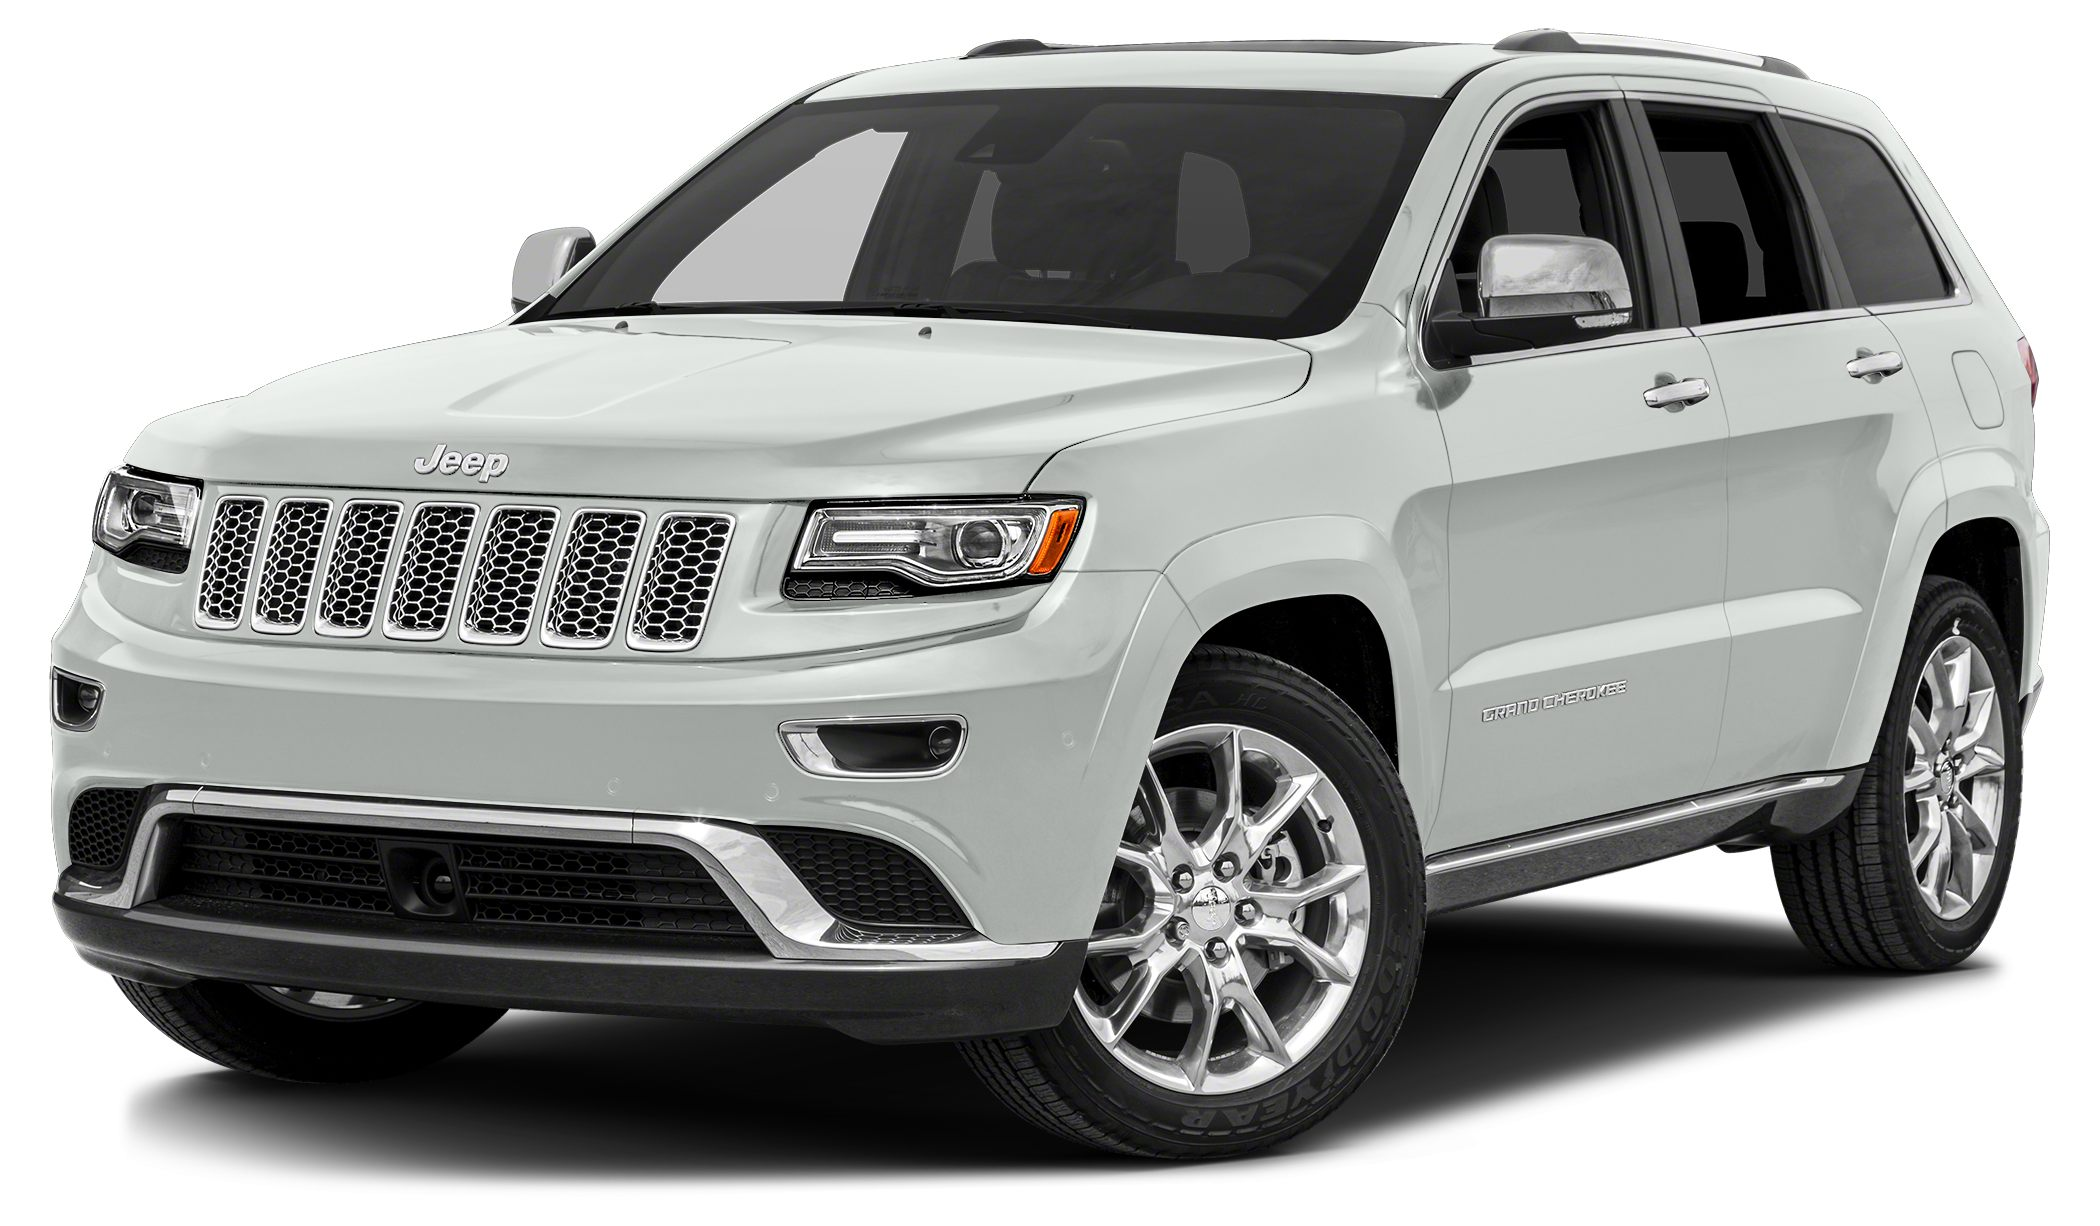 2015 Jeep Grand Cherokee Summit Bright White Clearcoat 2015 Jeep Grand Cherokee Summit 4WD 8-Speed